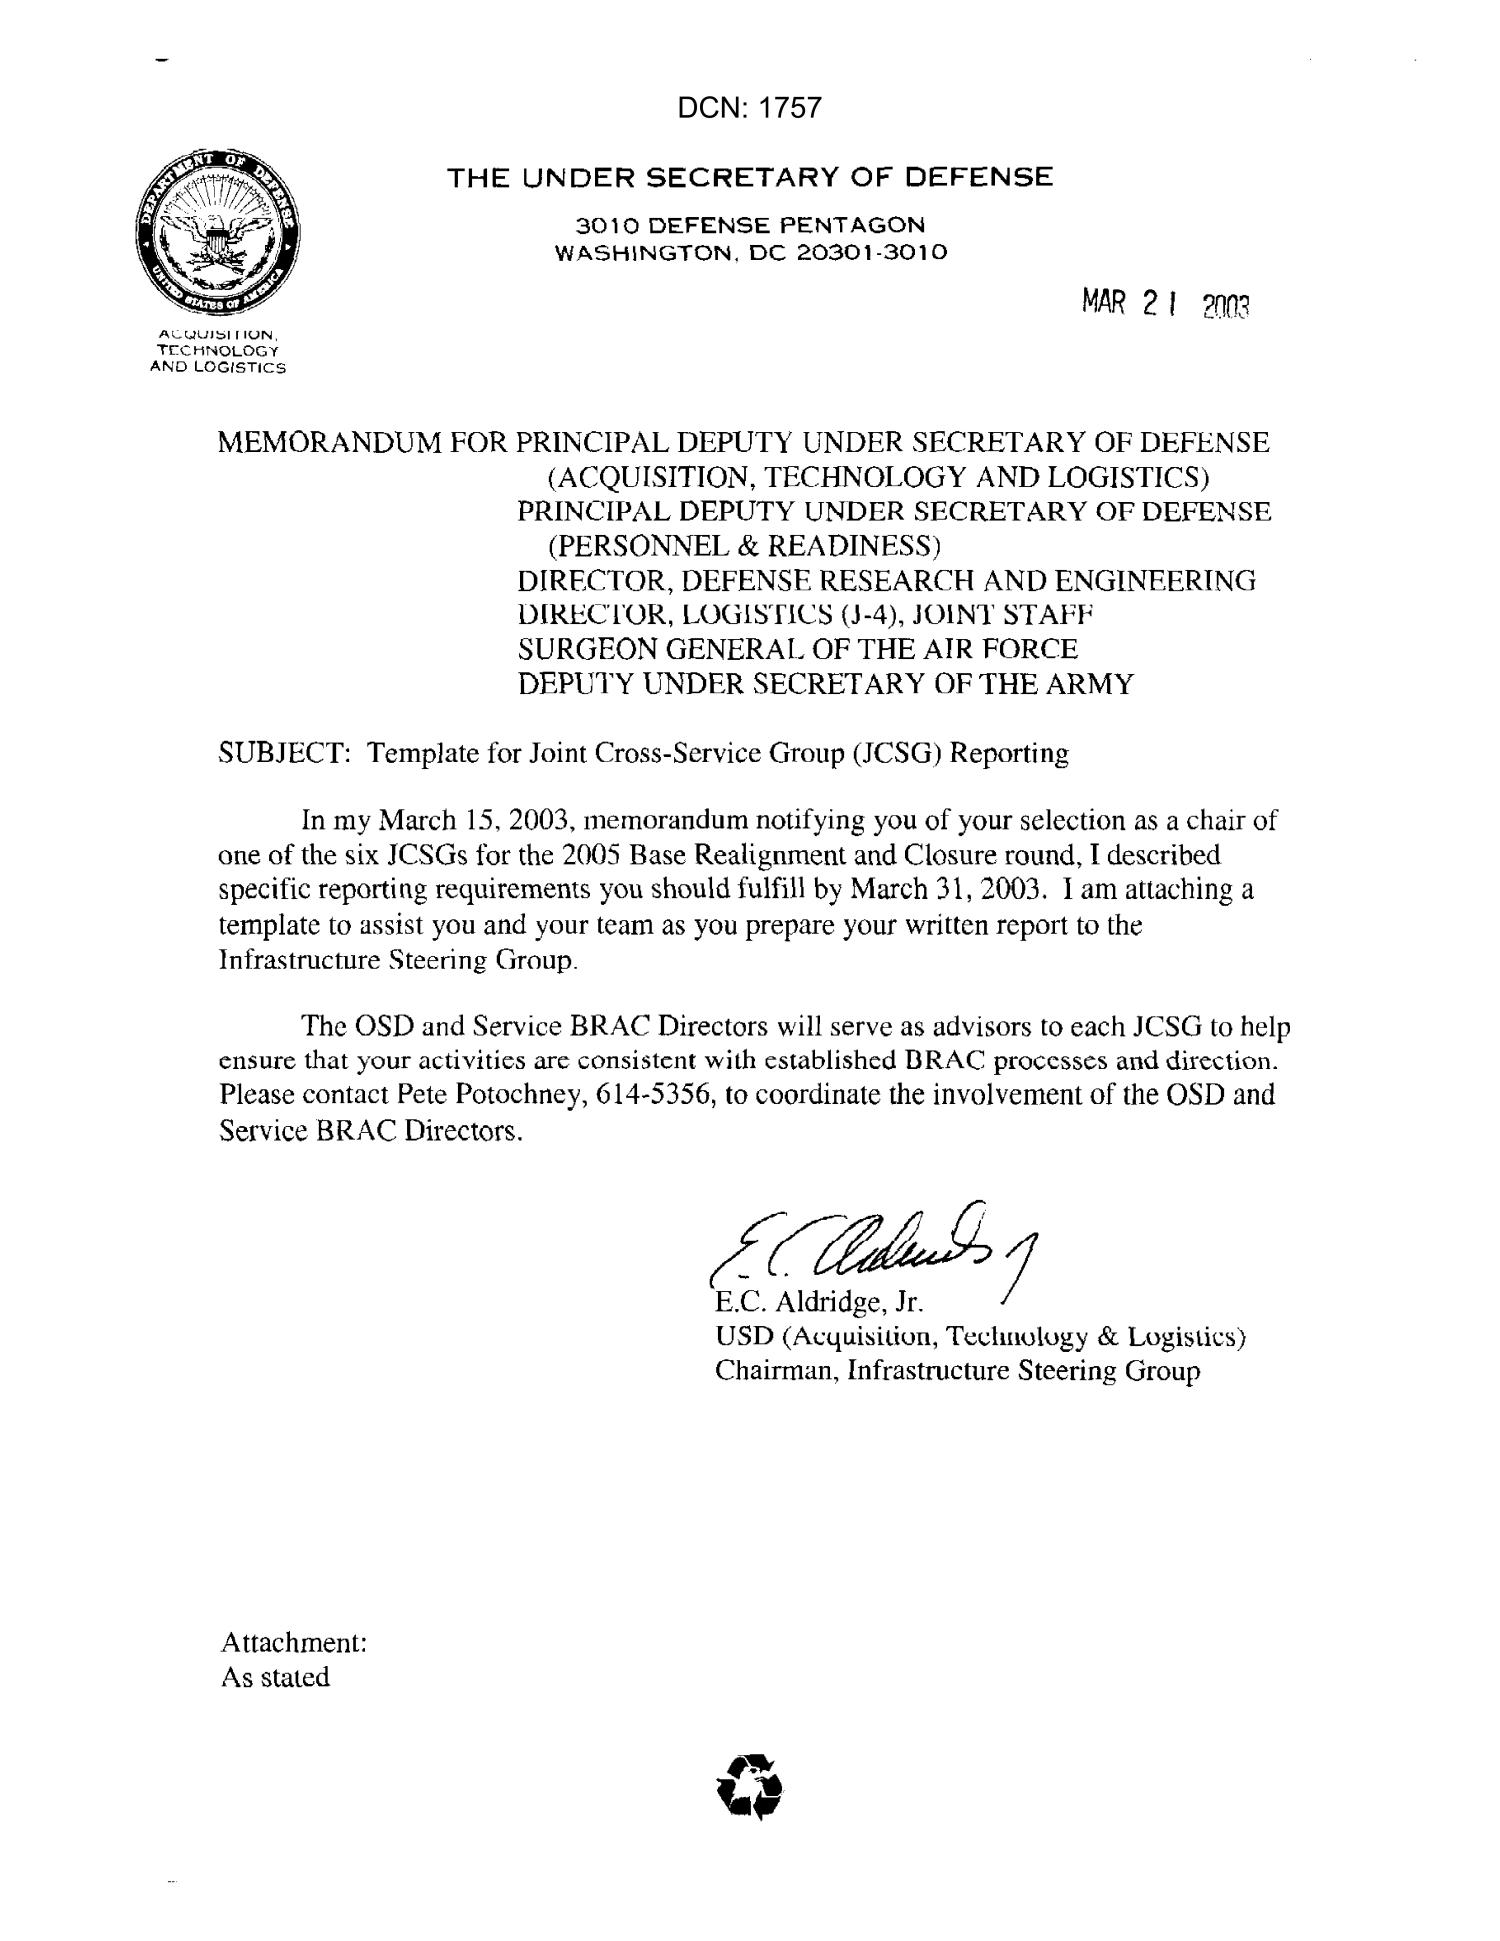 dod memorandum on joint cross